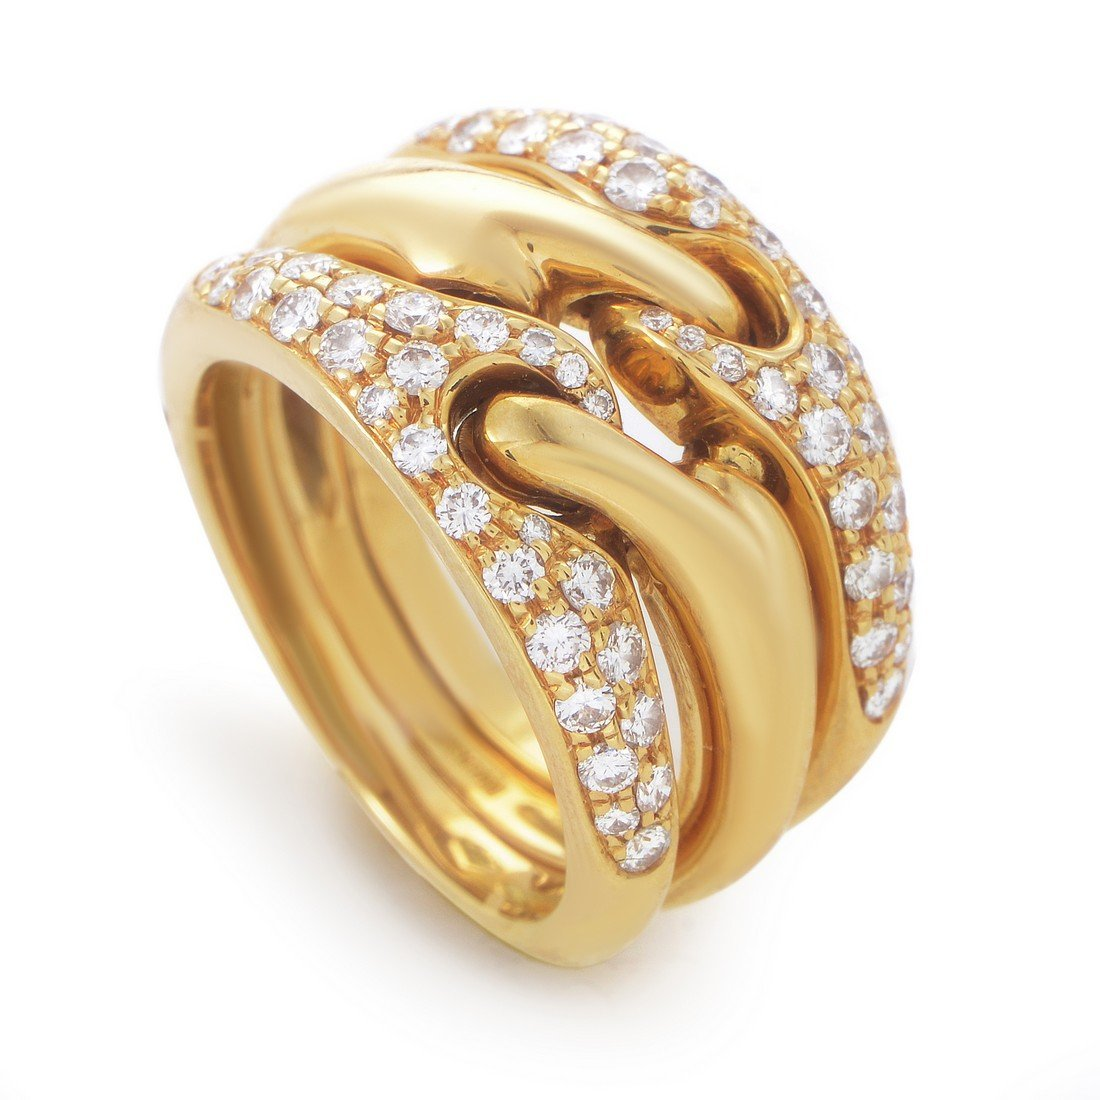 Bvlgari 18K Yellow Gold Diamond Band